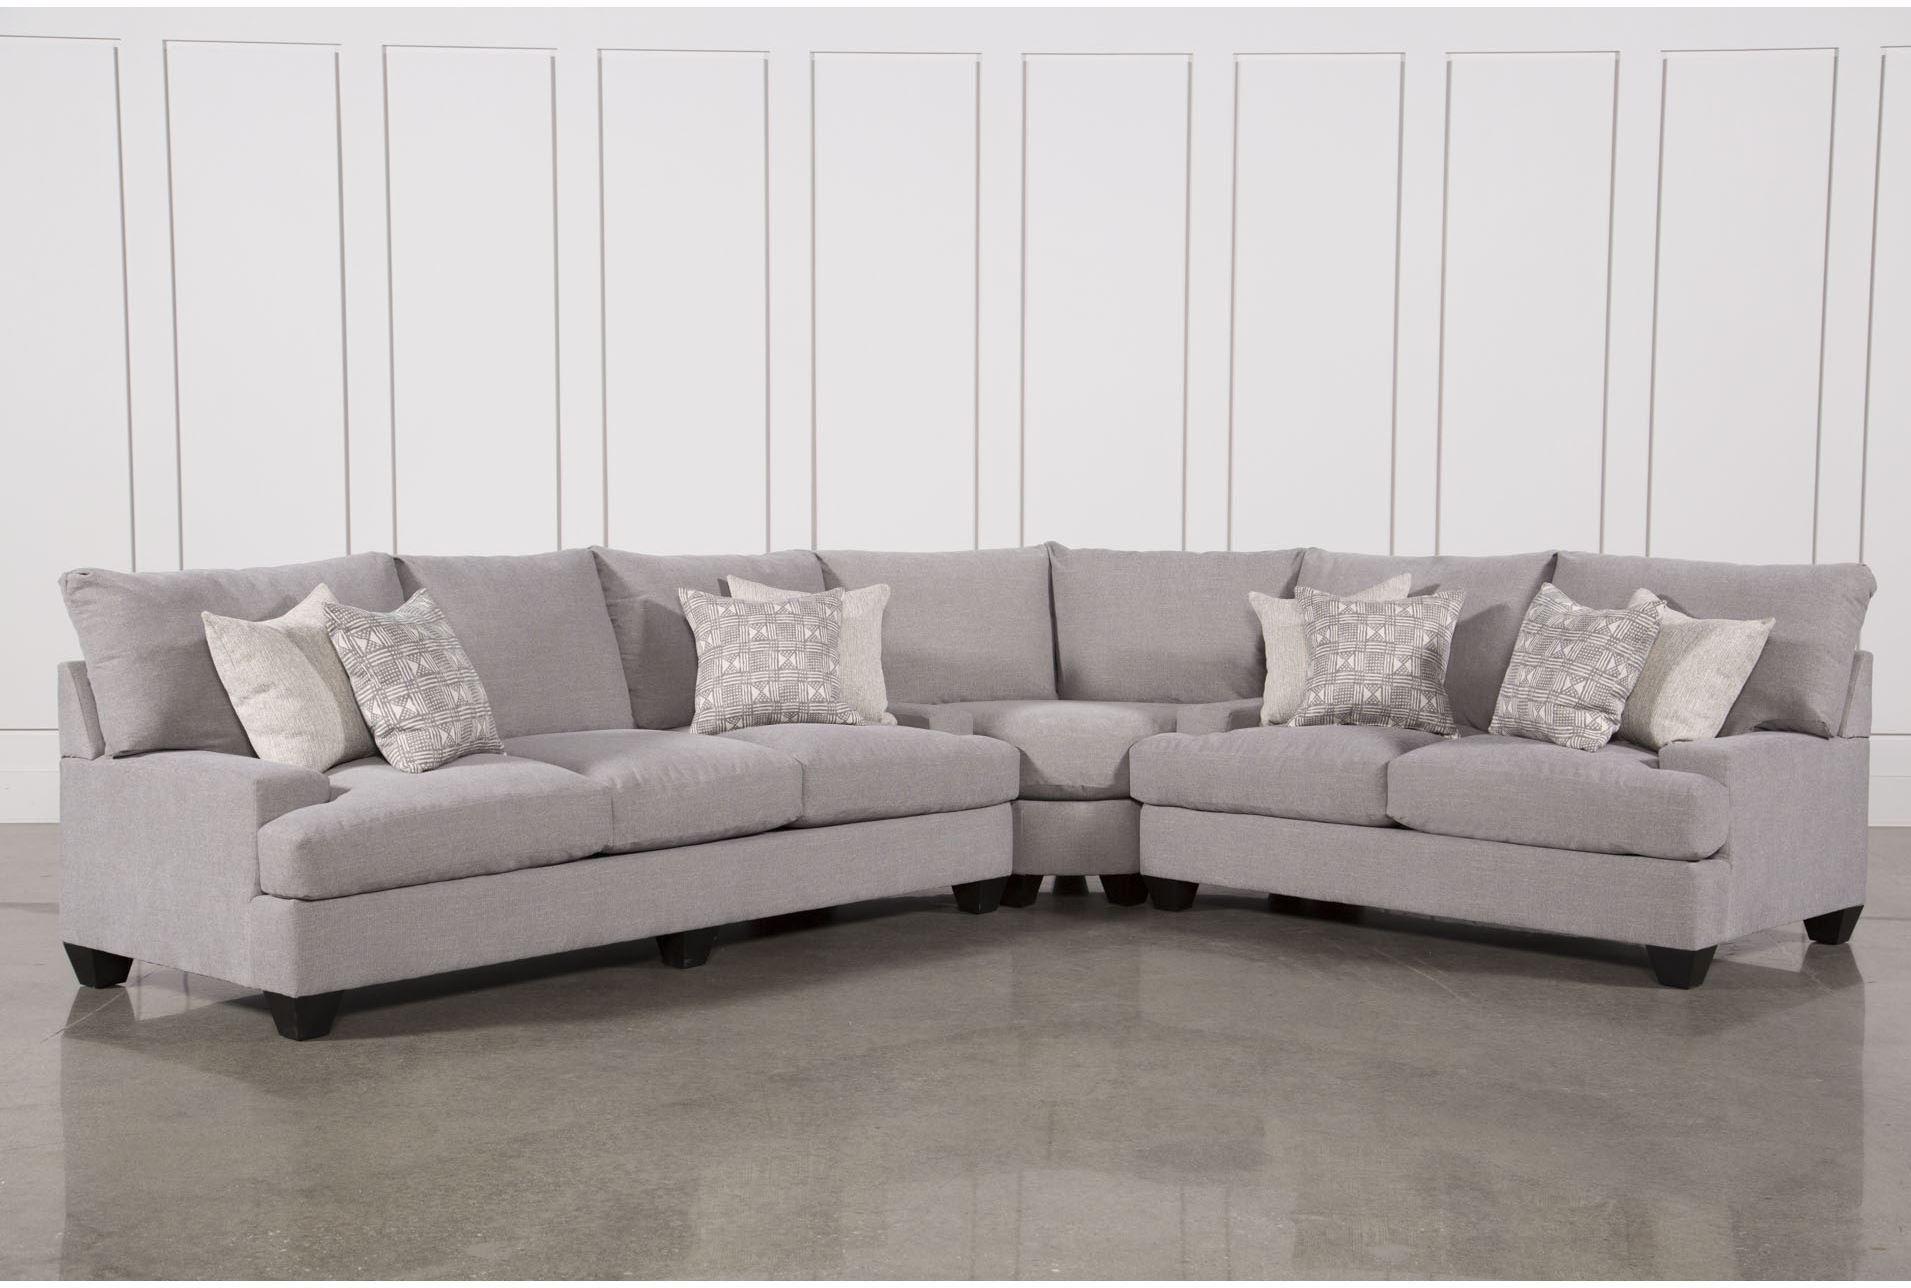 Harper Down 3 Piece Sectional | Sofas And Sectionals | Pinterest | 3 With Regard To Sierra Down 3 Piece Sectionals With Laf Chaise (View 4 of 25)